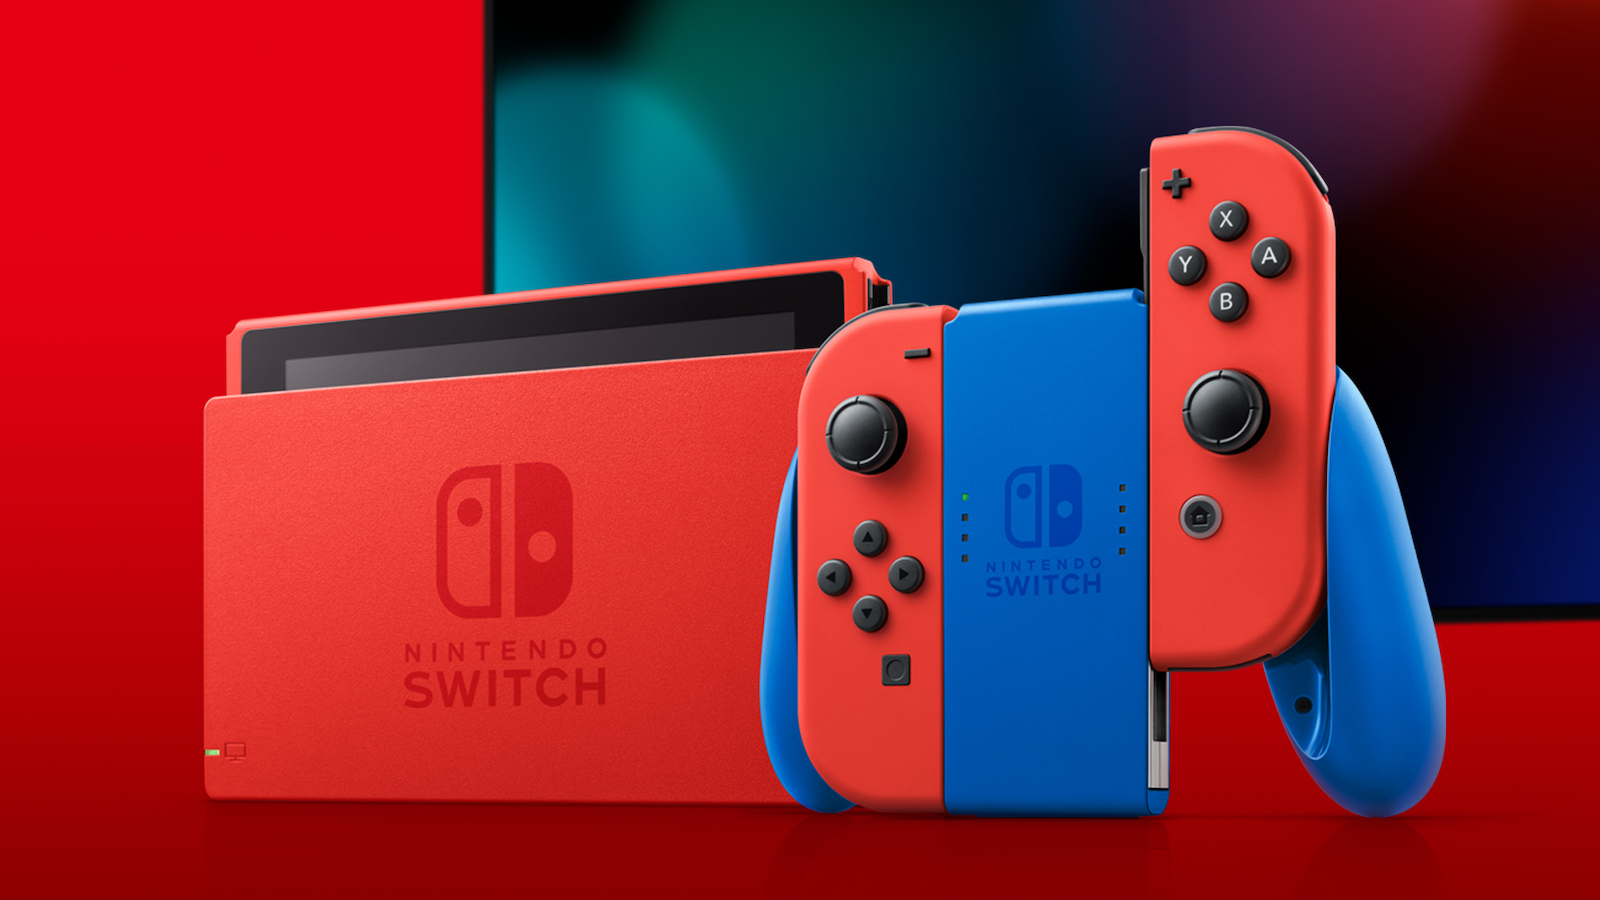 Nintendo Switch Mario Red & Blue Edition gaming console boasts a Mario-inspired look